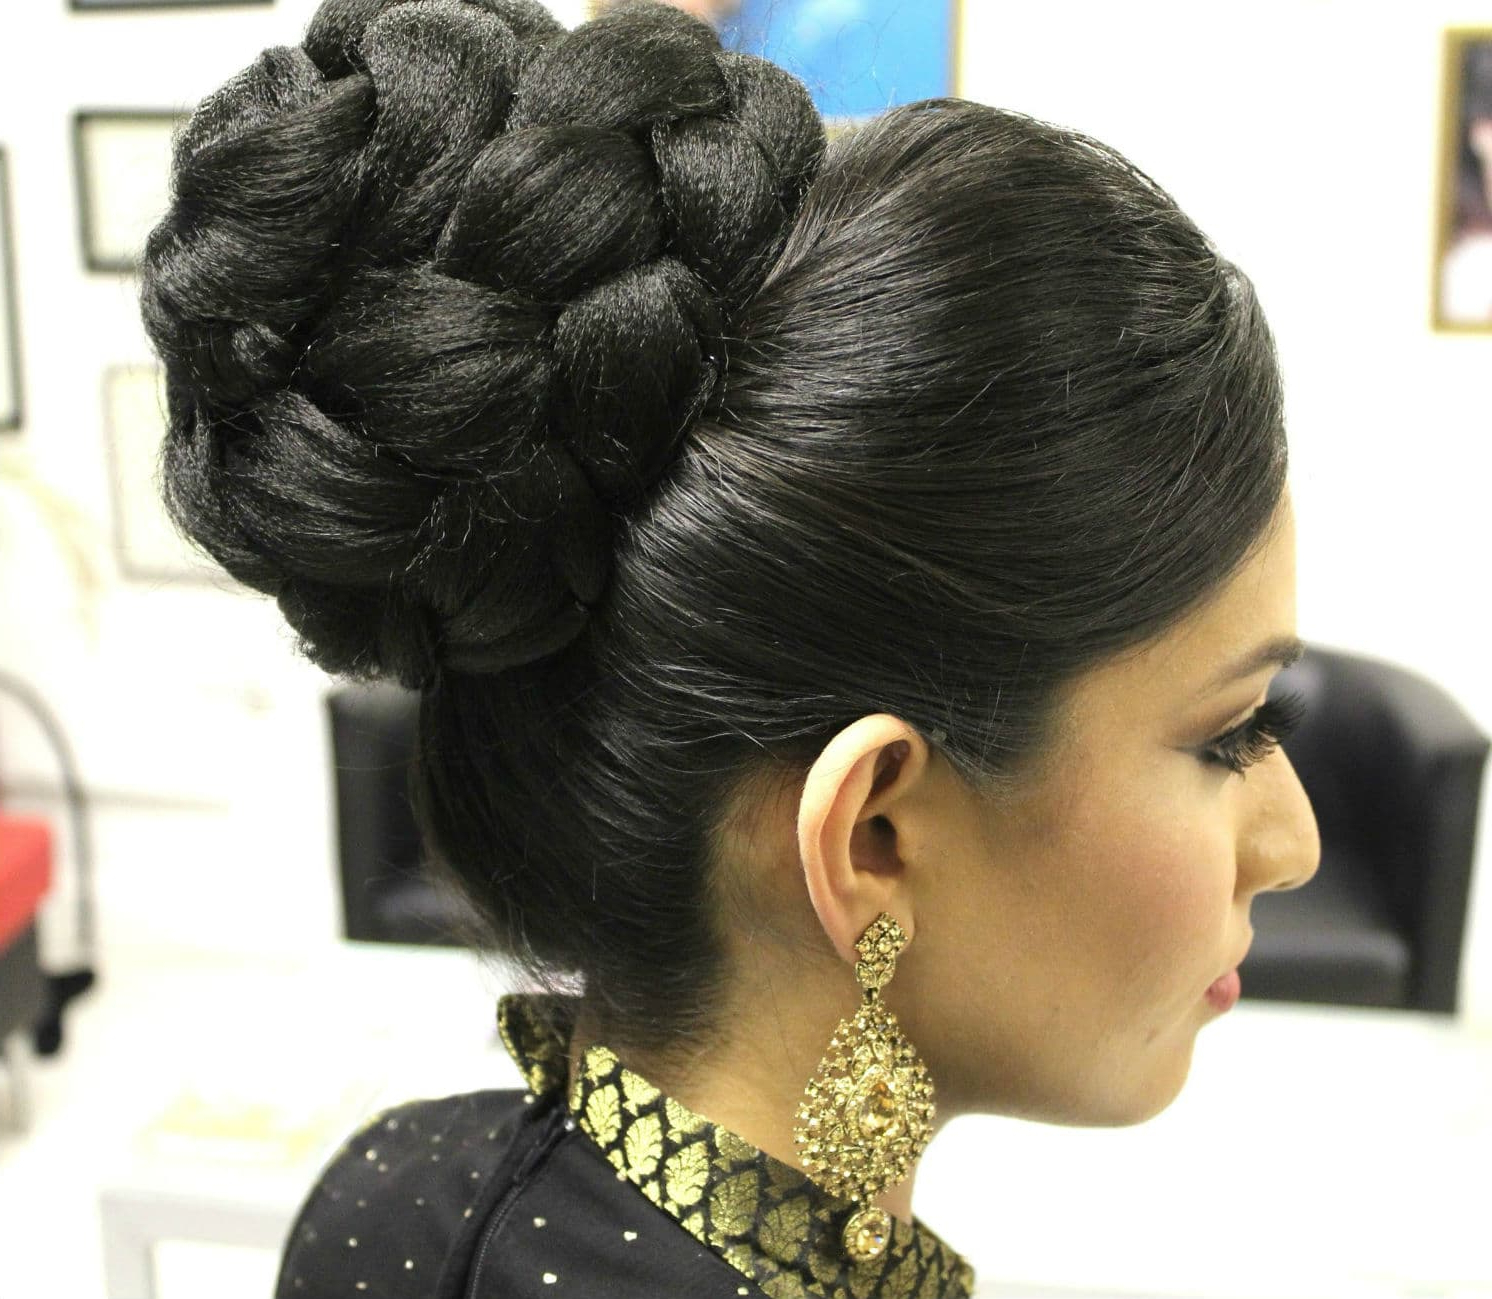 High Bun Hairstyle For Indian Bride (View 16 of 20)